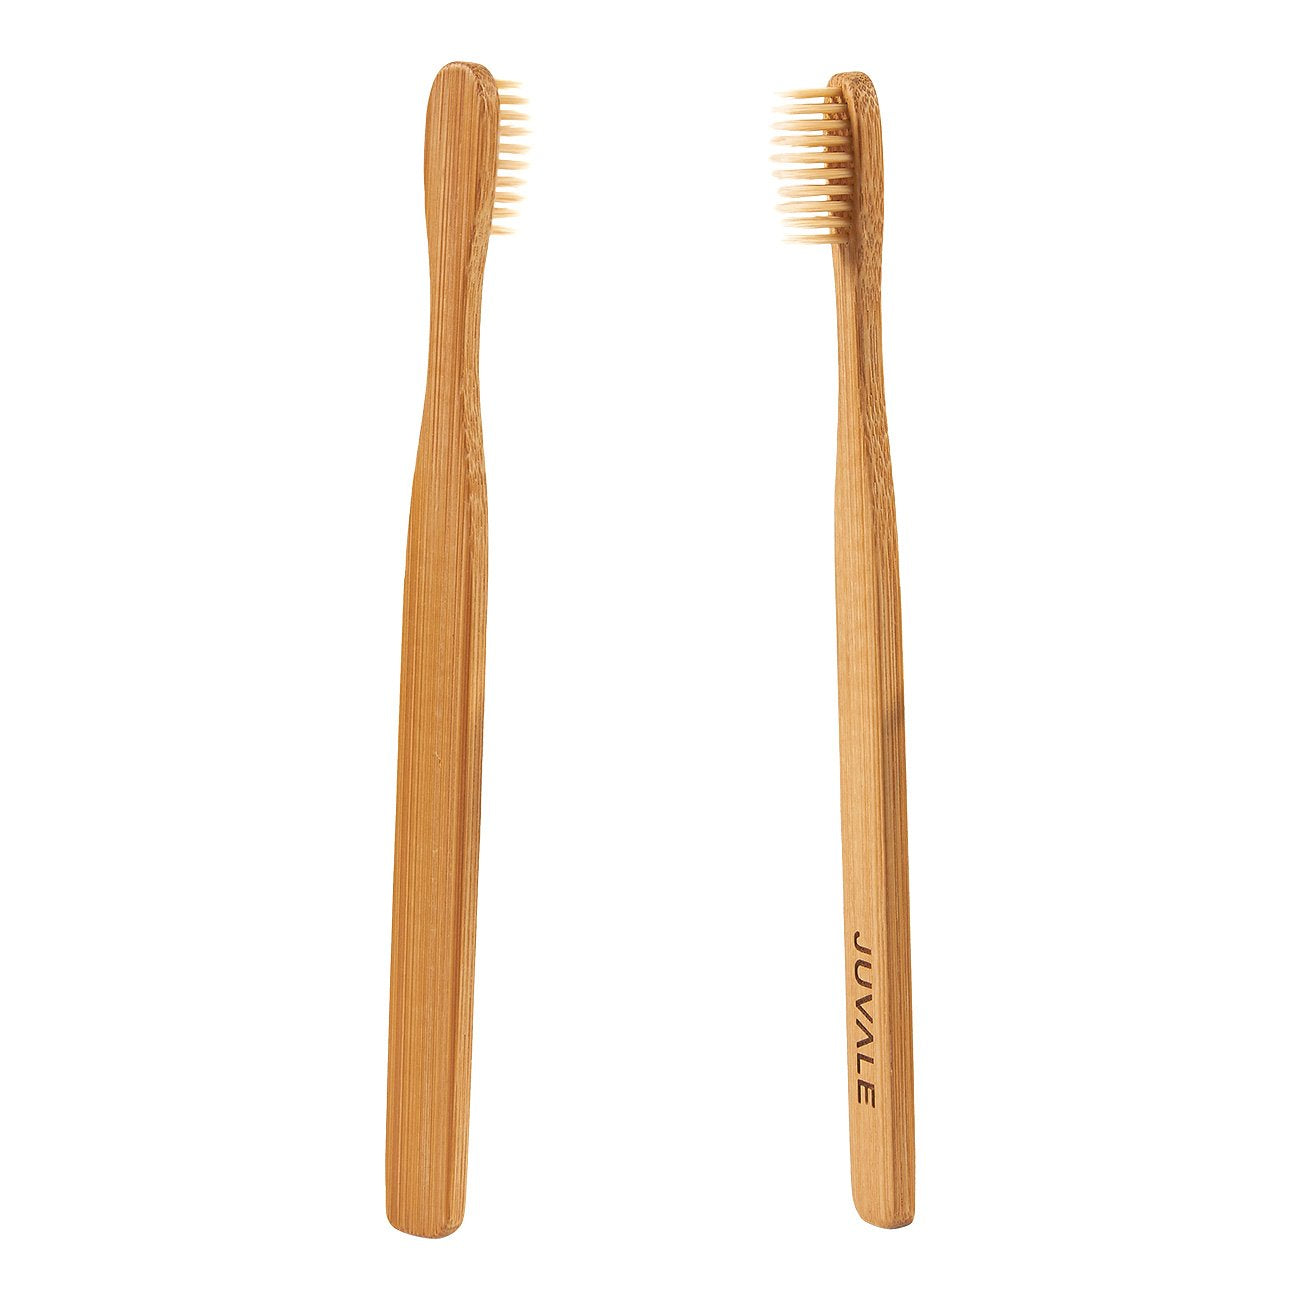 Natural Bamboo Toothbrushes - Durable and Eco-Friendly Wooden Handles with BPA-Free Nylon Bristles for Natural Dental Care